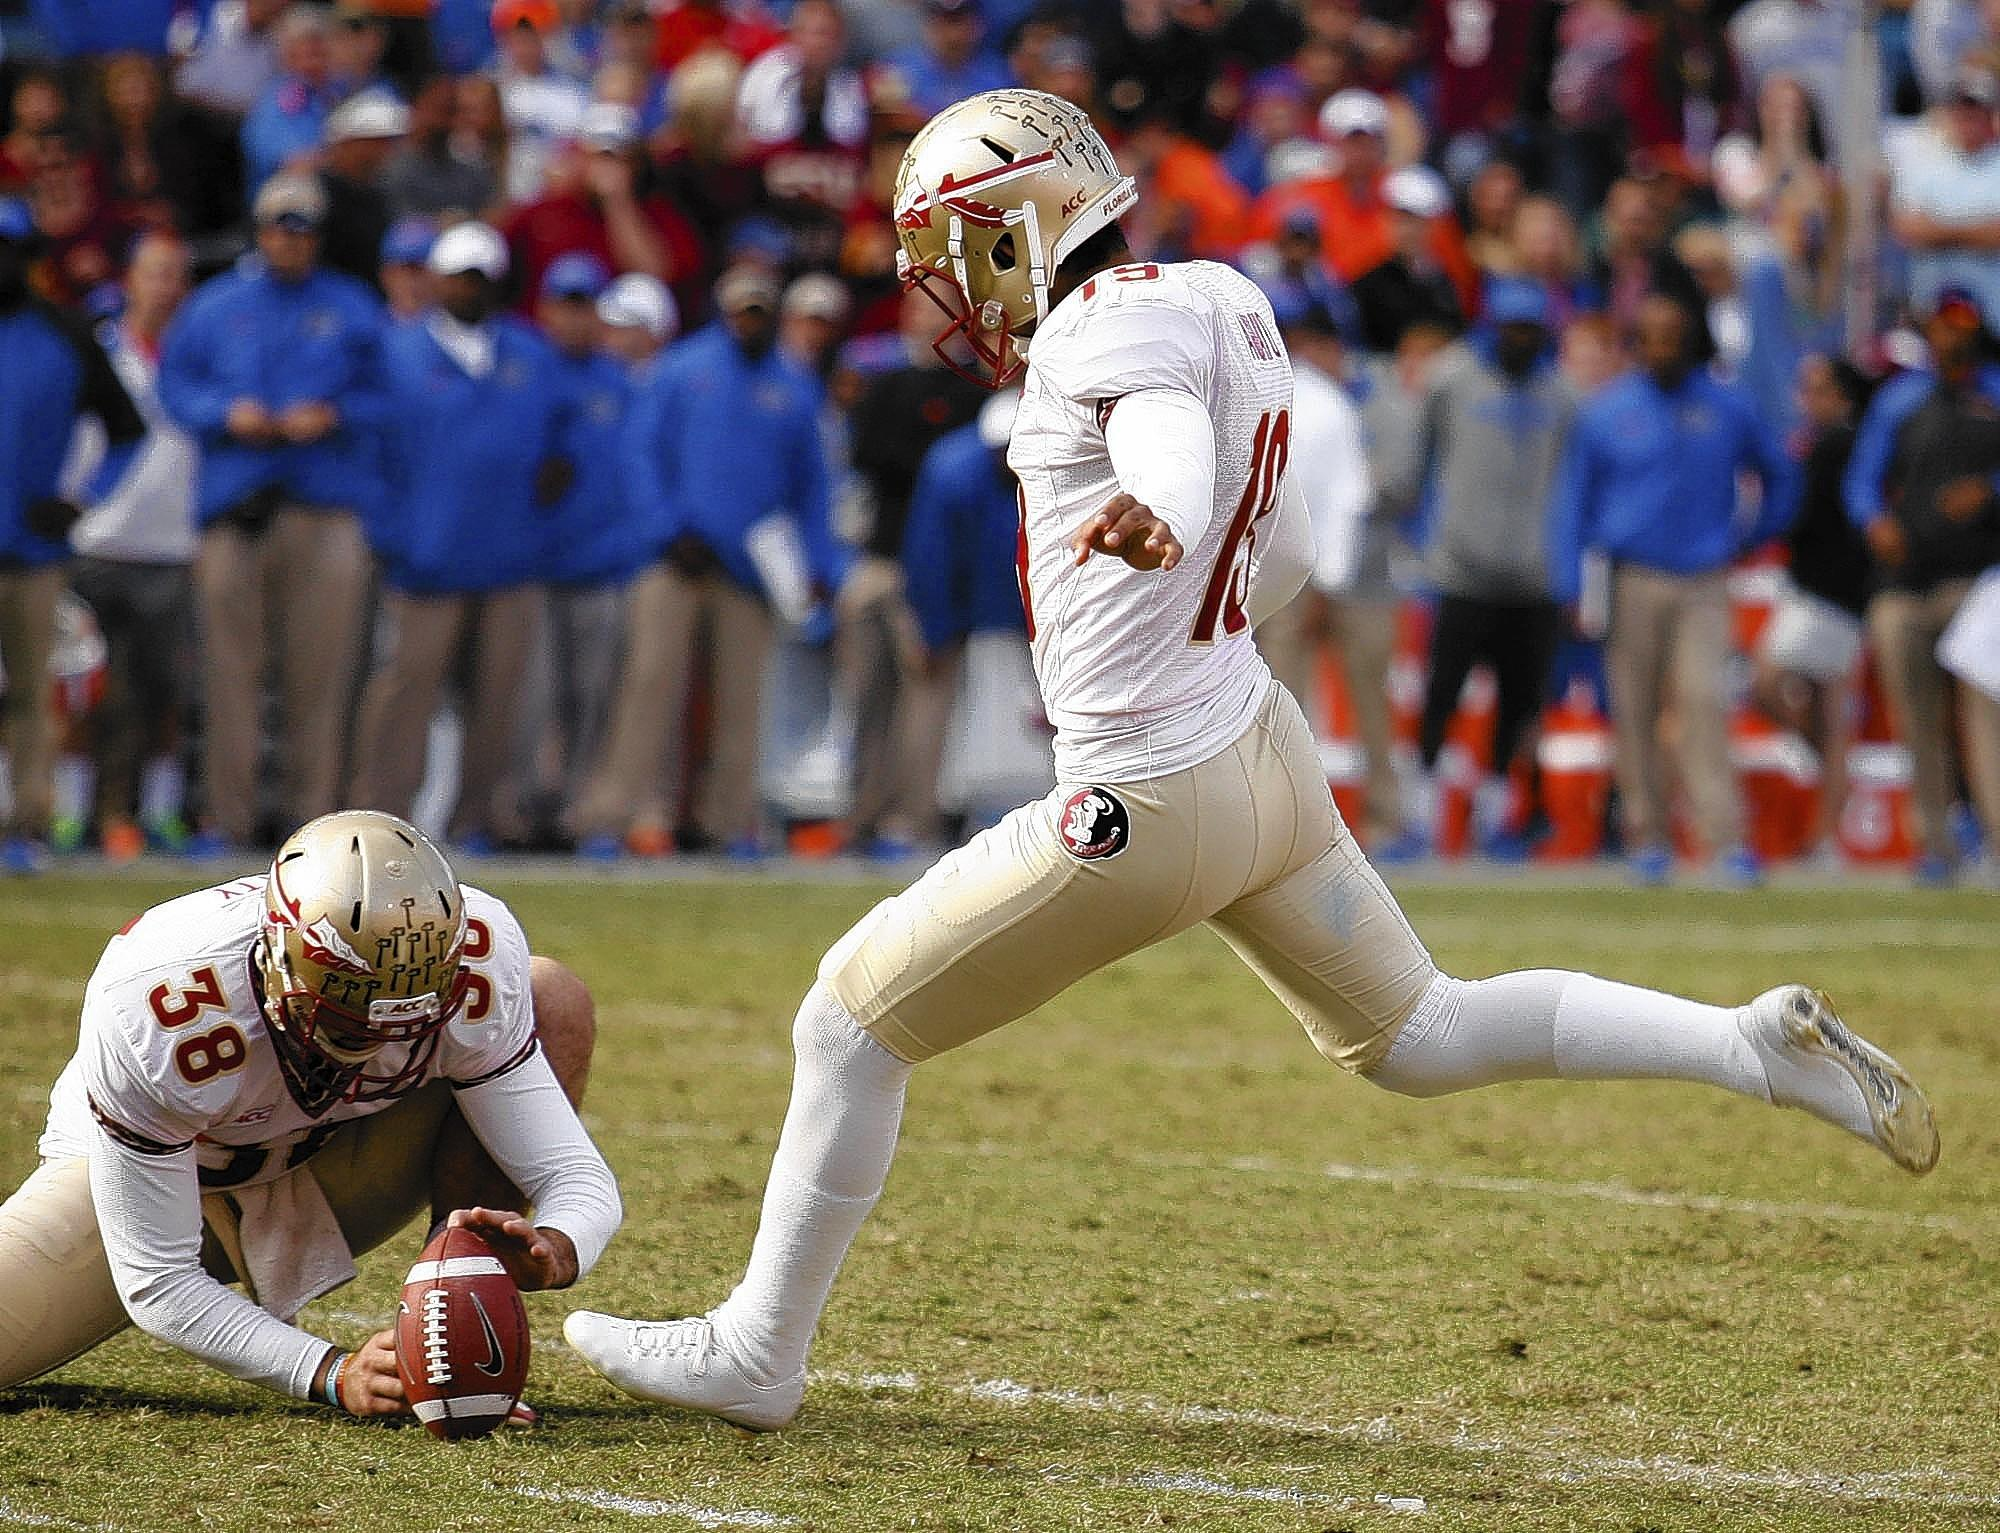 FSU kicker Roberto Aguayo kicks a field goal during the Florida State at University of Florida football game at Ben Hill Griffin Stadium in Gainesville on Saturday, November 30, 2013. Florida State won the game 37-7. (Stephen M. Dowell/Orlando Sentinel)